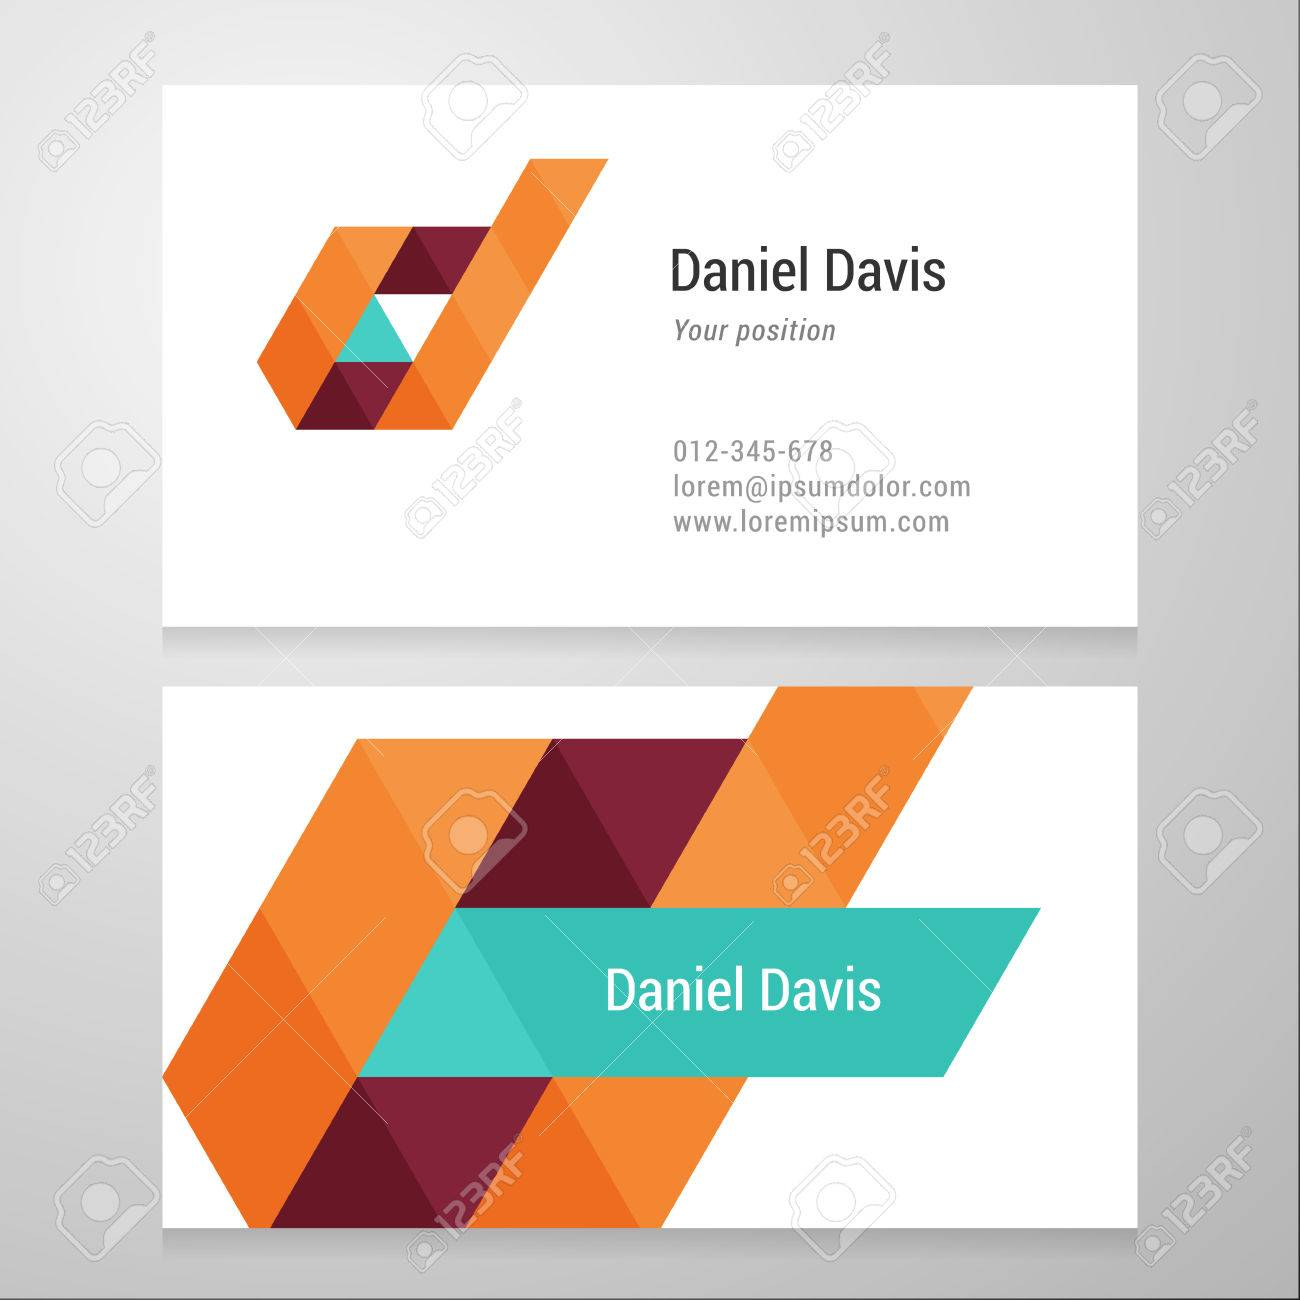 Editable business cards jeezejulia modern letter d business card template vector design layered accmission Choice Image